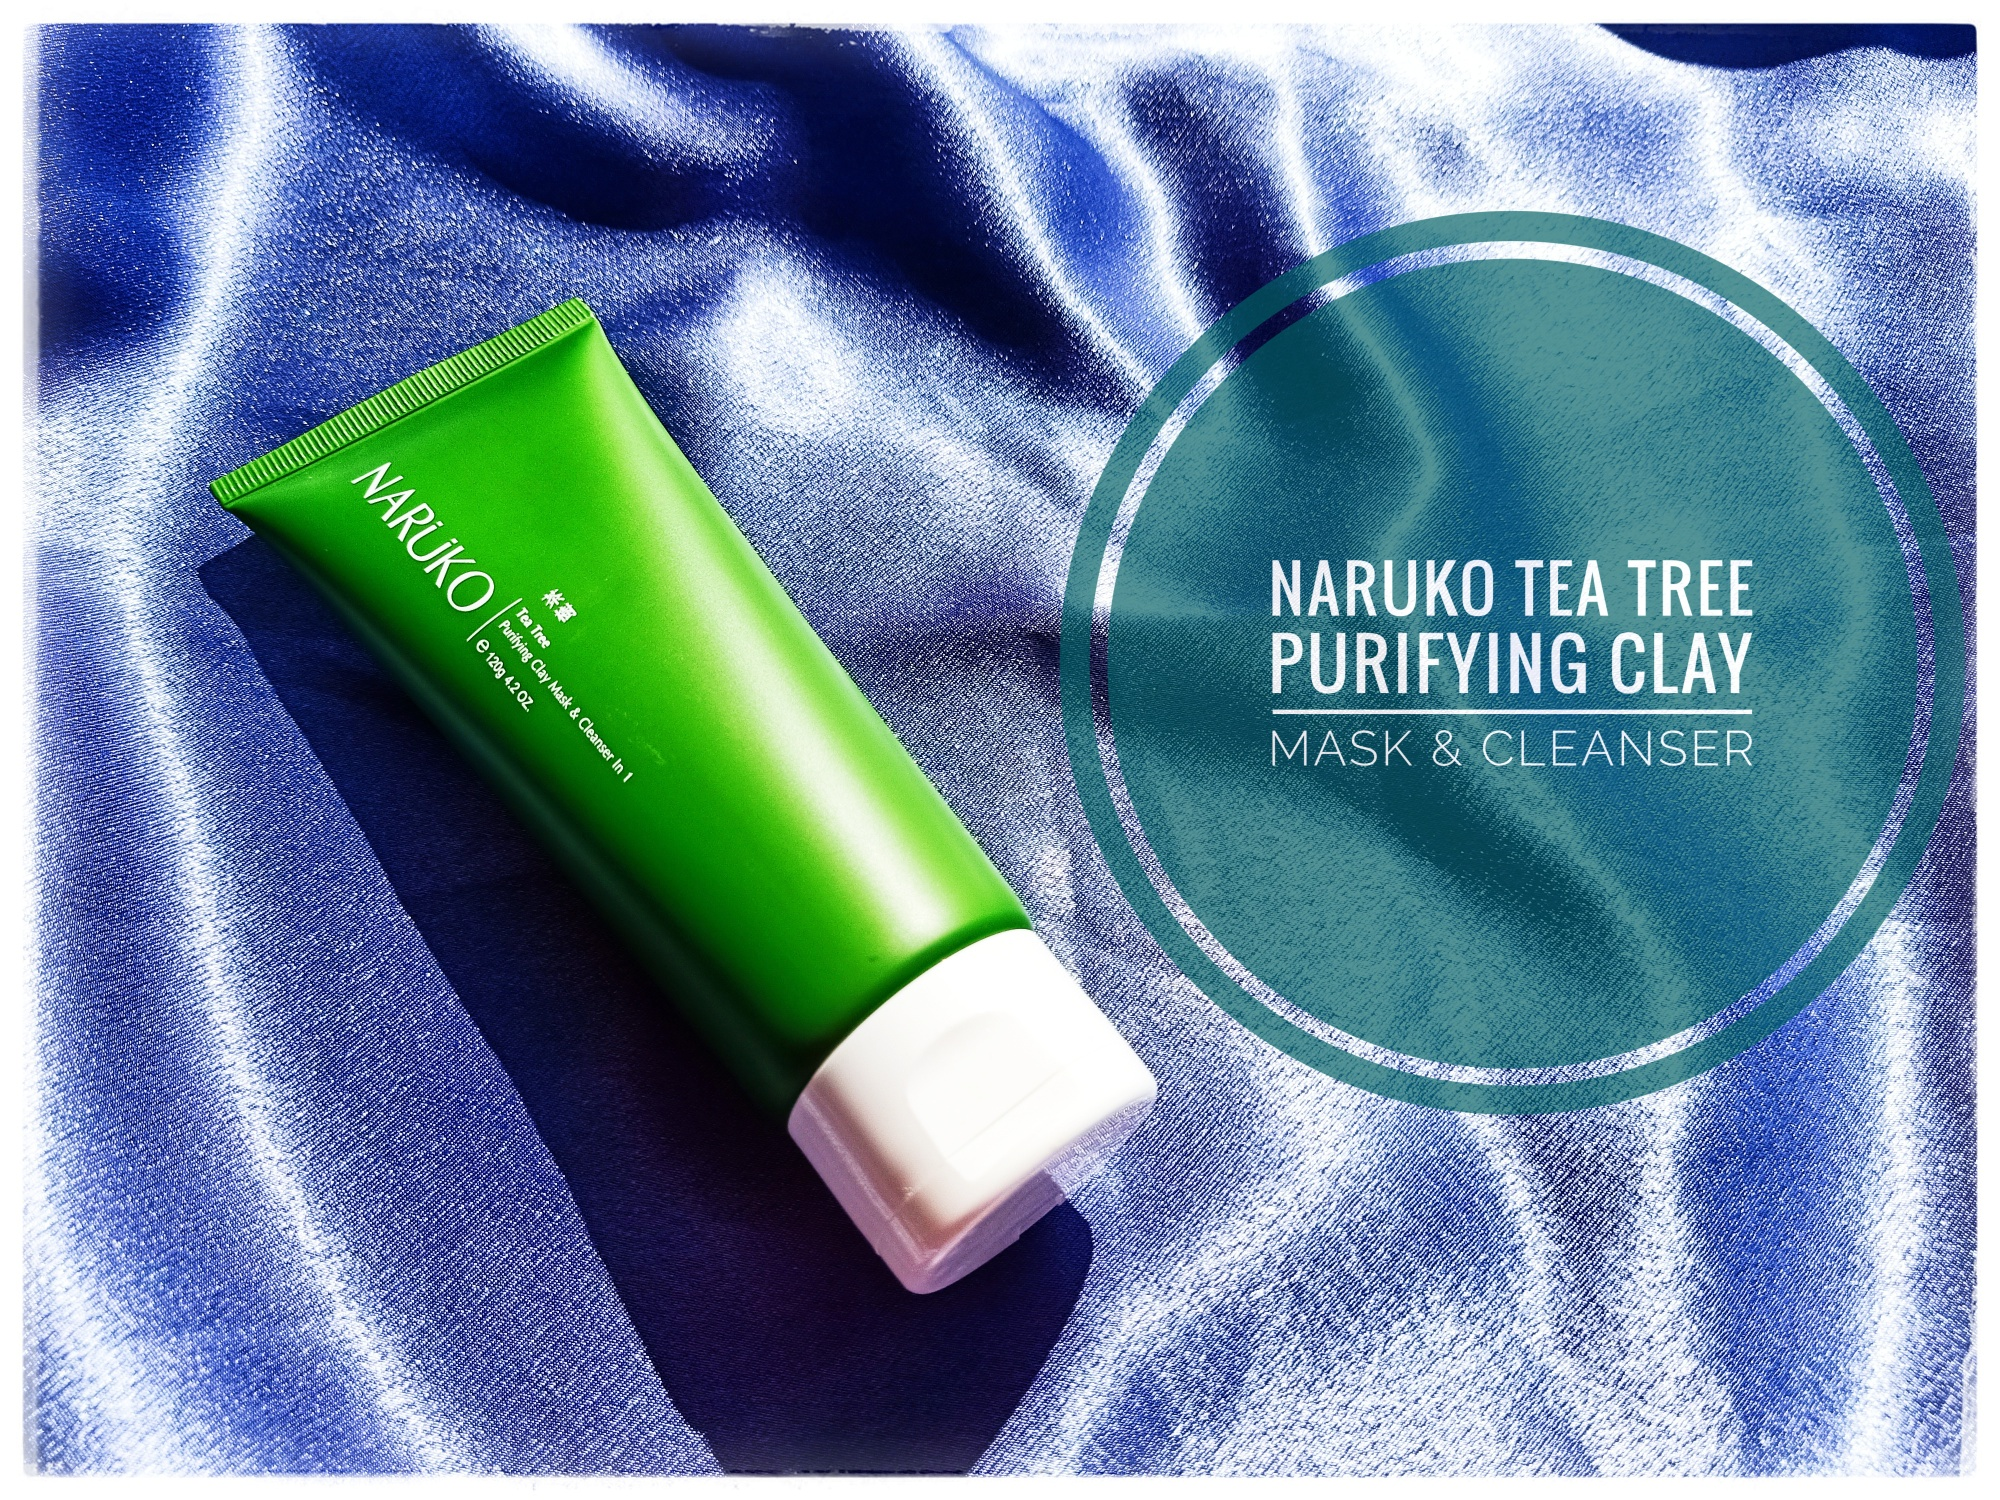 REVIEW | Naruko Tea Tree Purifying Clay Mask & Cleanser In 1